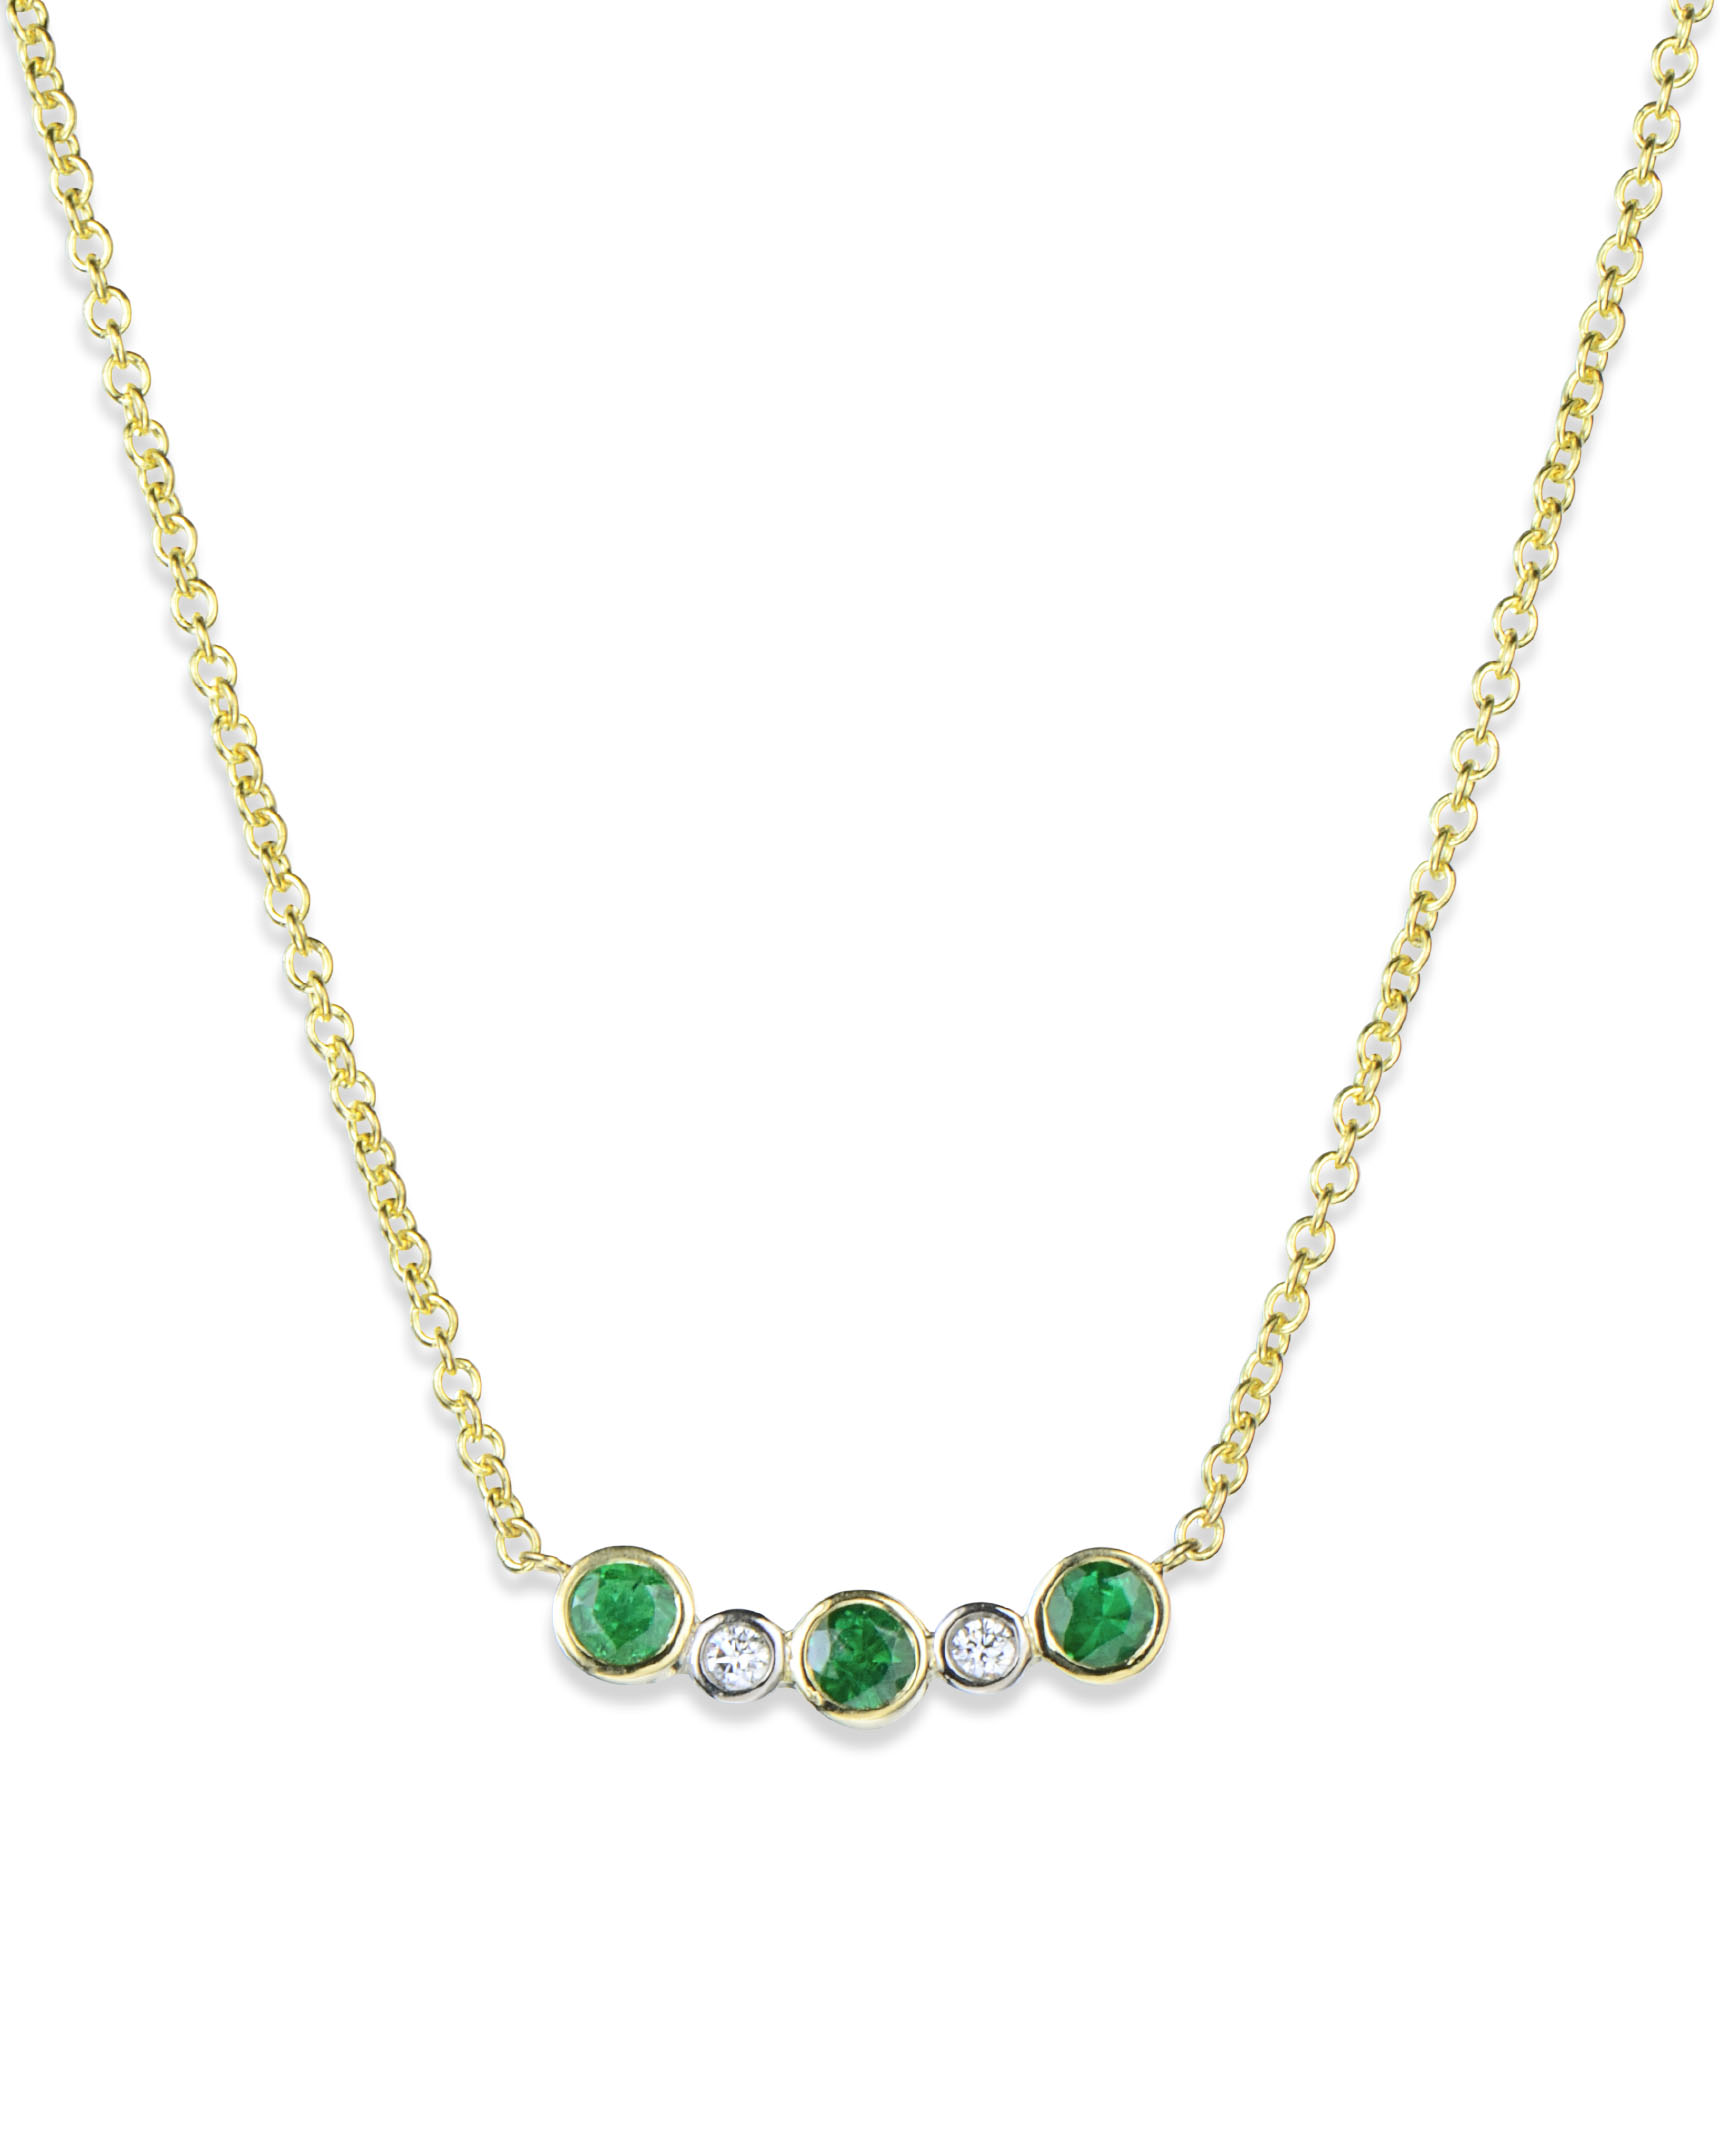 Bezel Set Emerald And Diamond Necklace Turgeon Raine